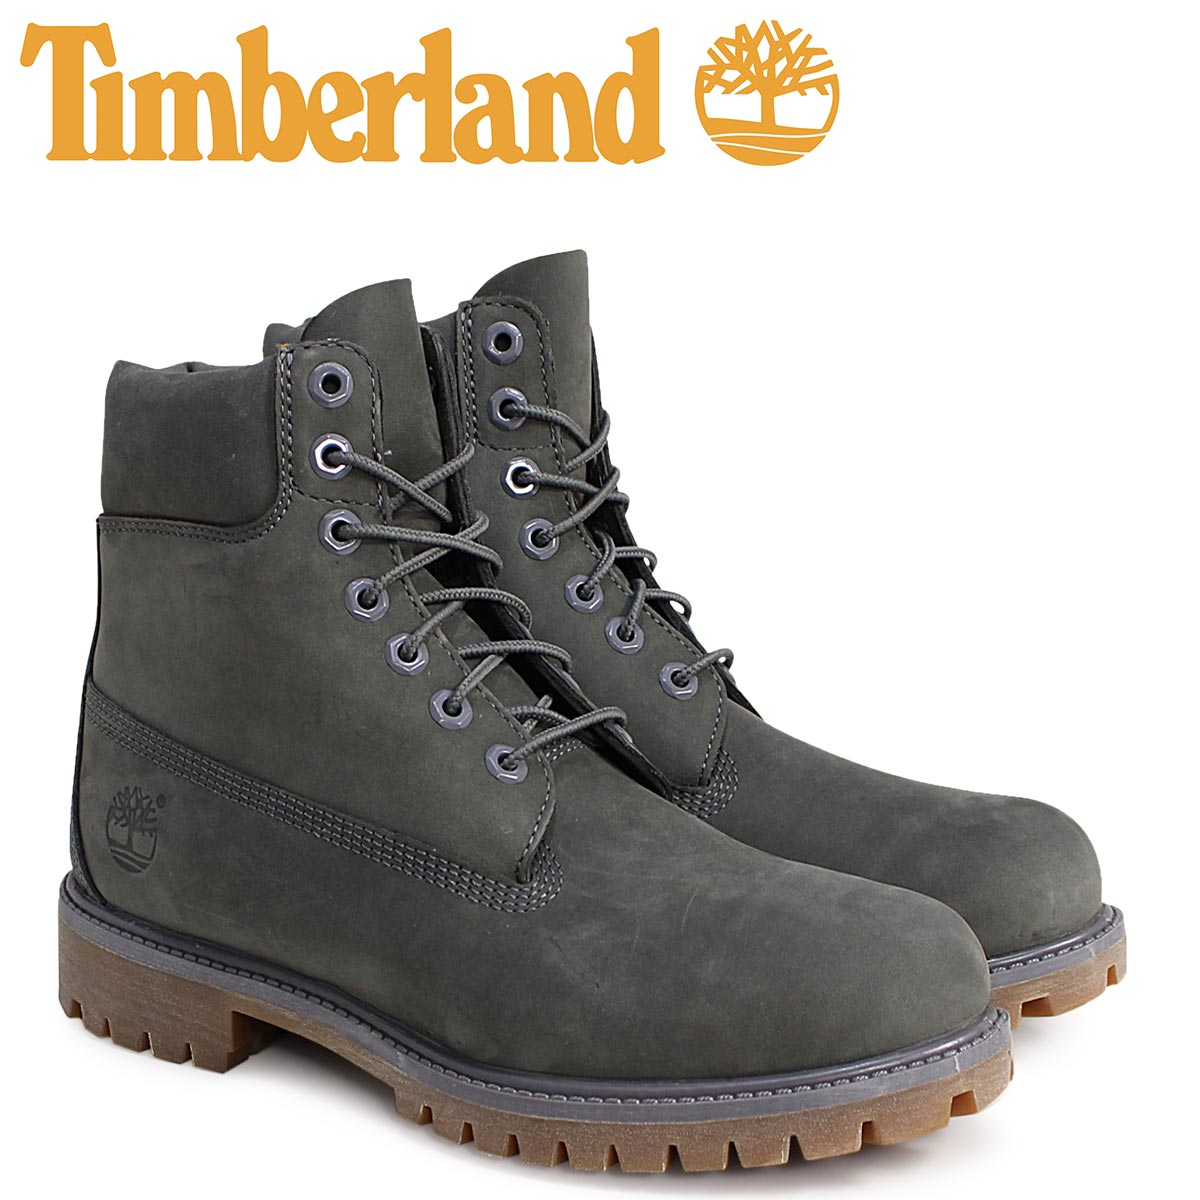 059fe7d87a9e Timberland timberland 6 inches premium boots men 6INCHI 6-INCH PREMIUM  WATERPLOOF BOOTS A114K gray waterproofing  12 16 Shinnyu load